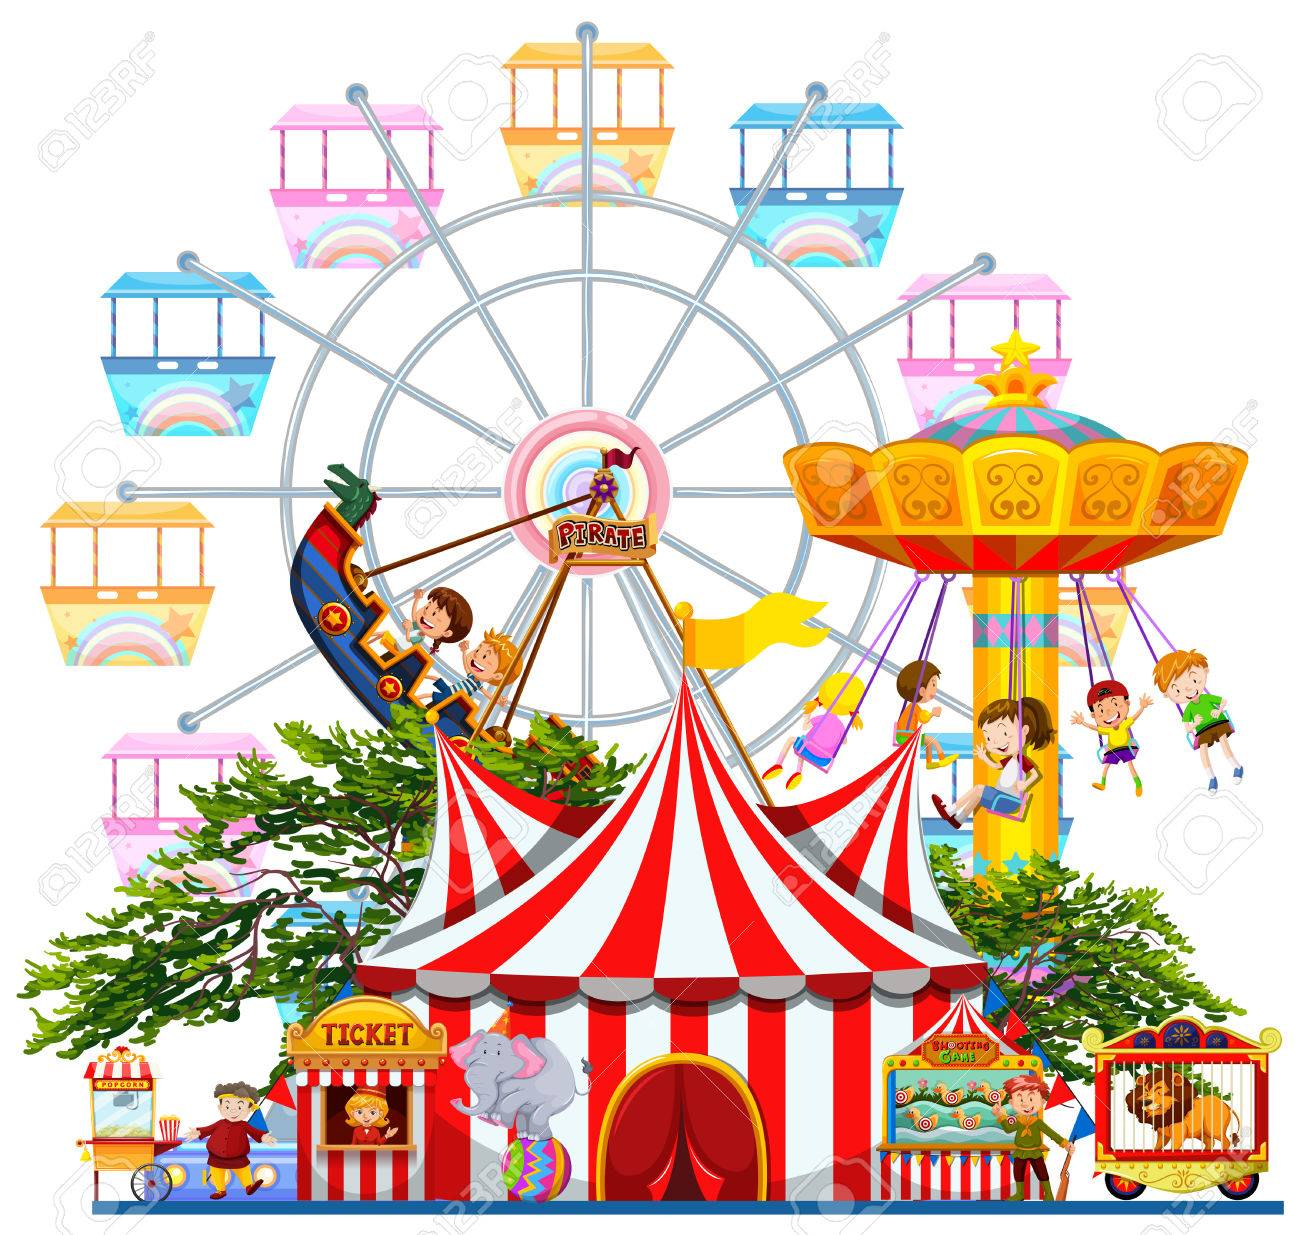 amusement park scene with many rides illustration royalty free rh 123rf com amusement park clipart map amusement park clipart map